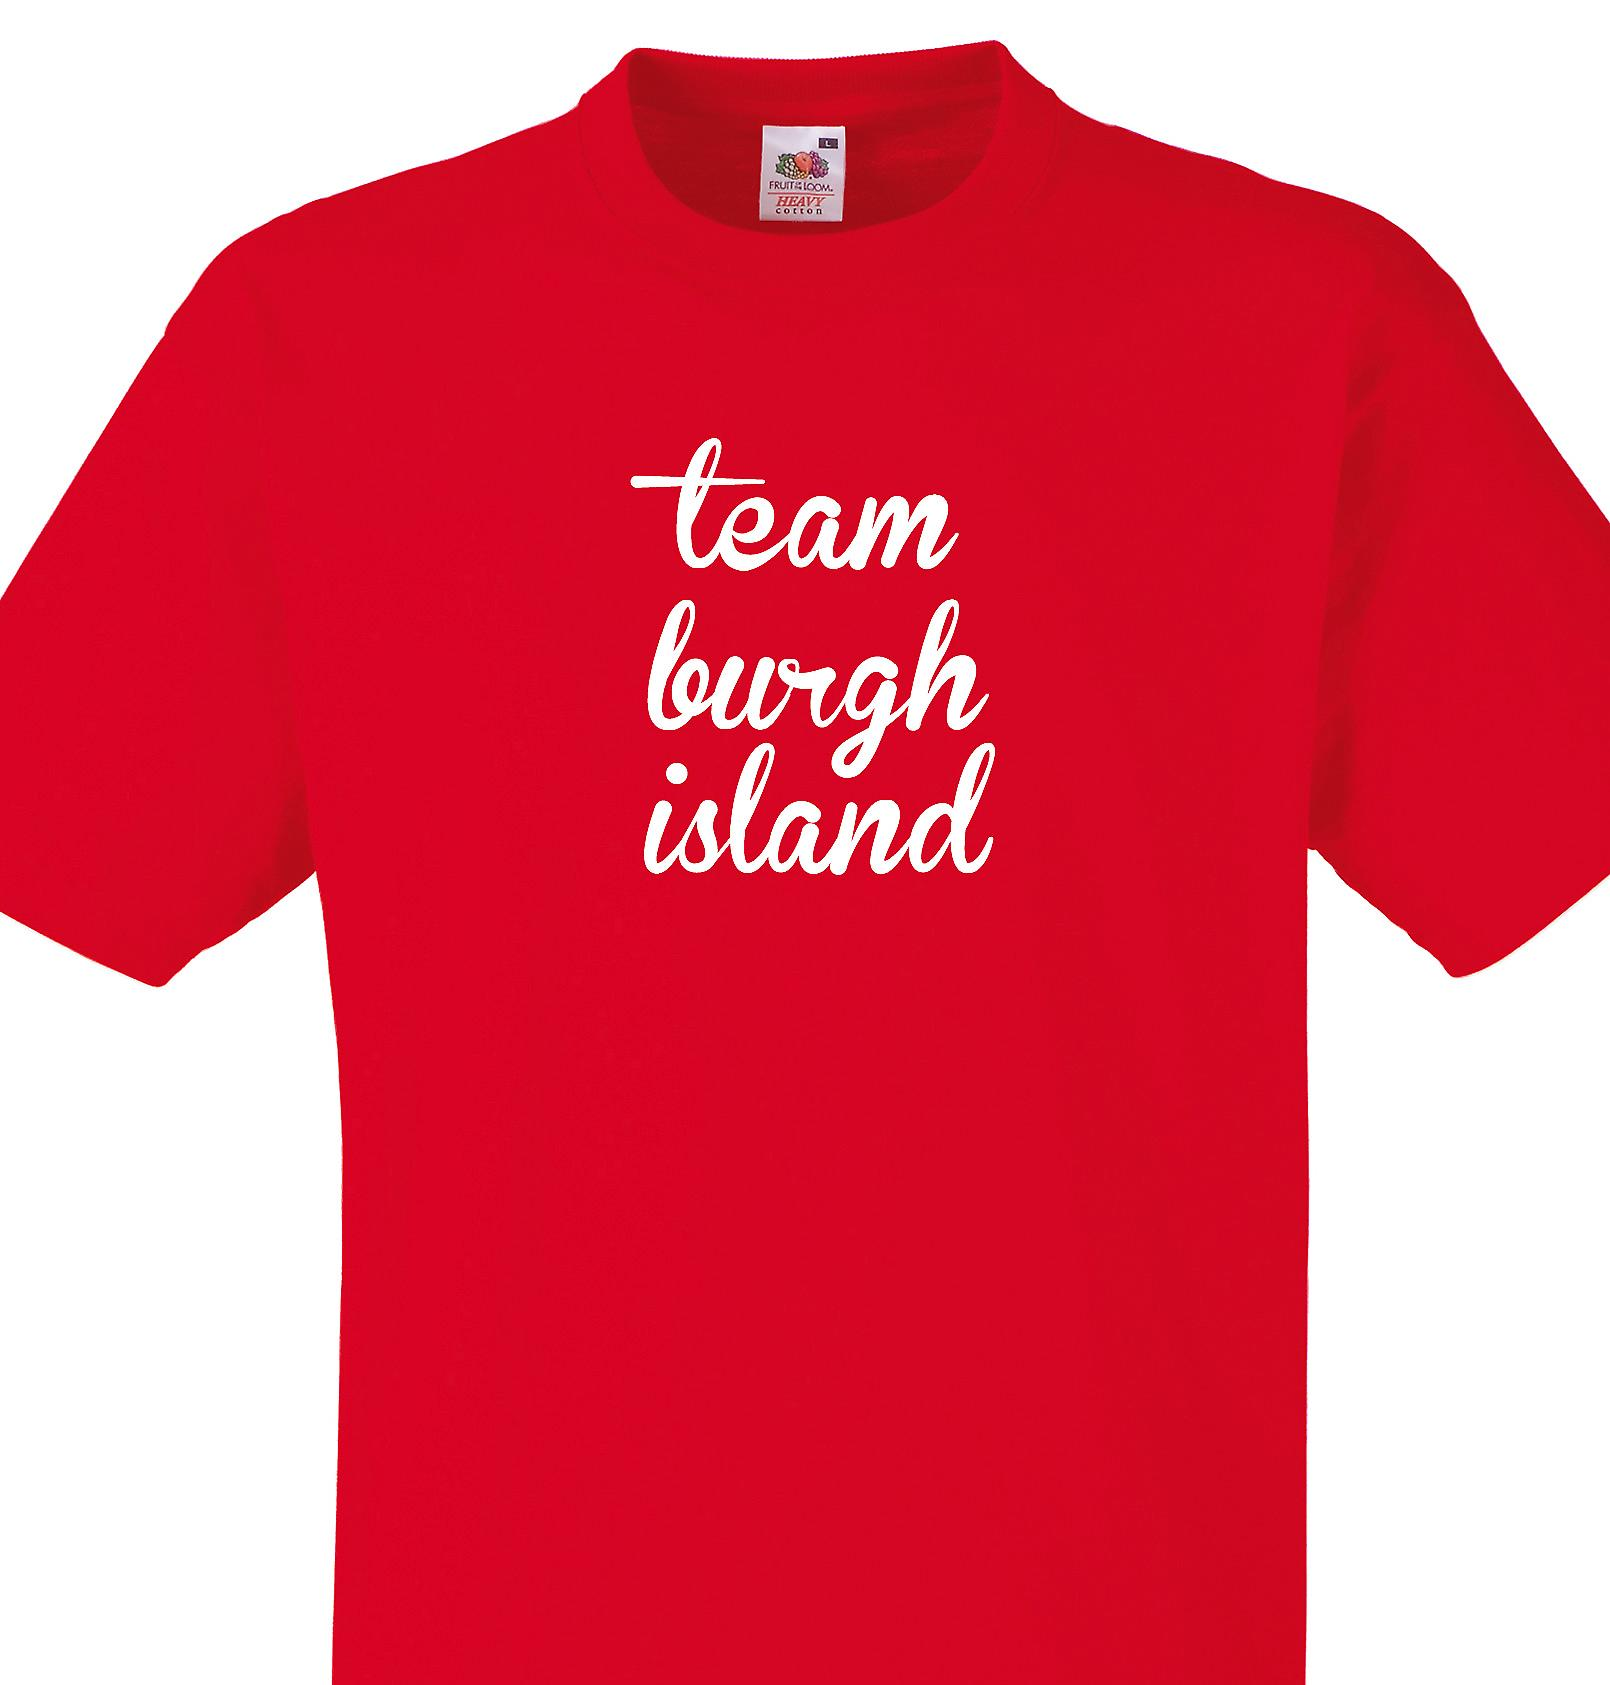 Team Burgh island Red T shirt